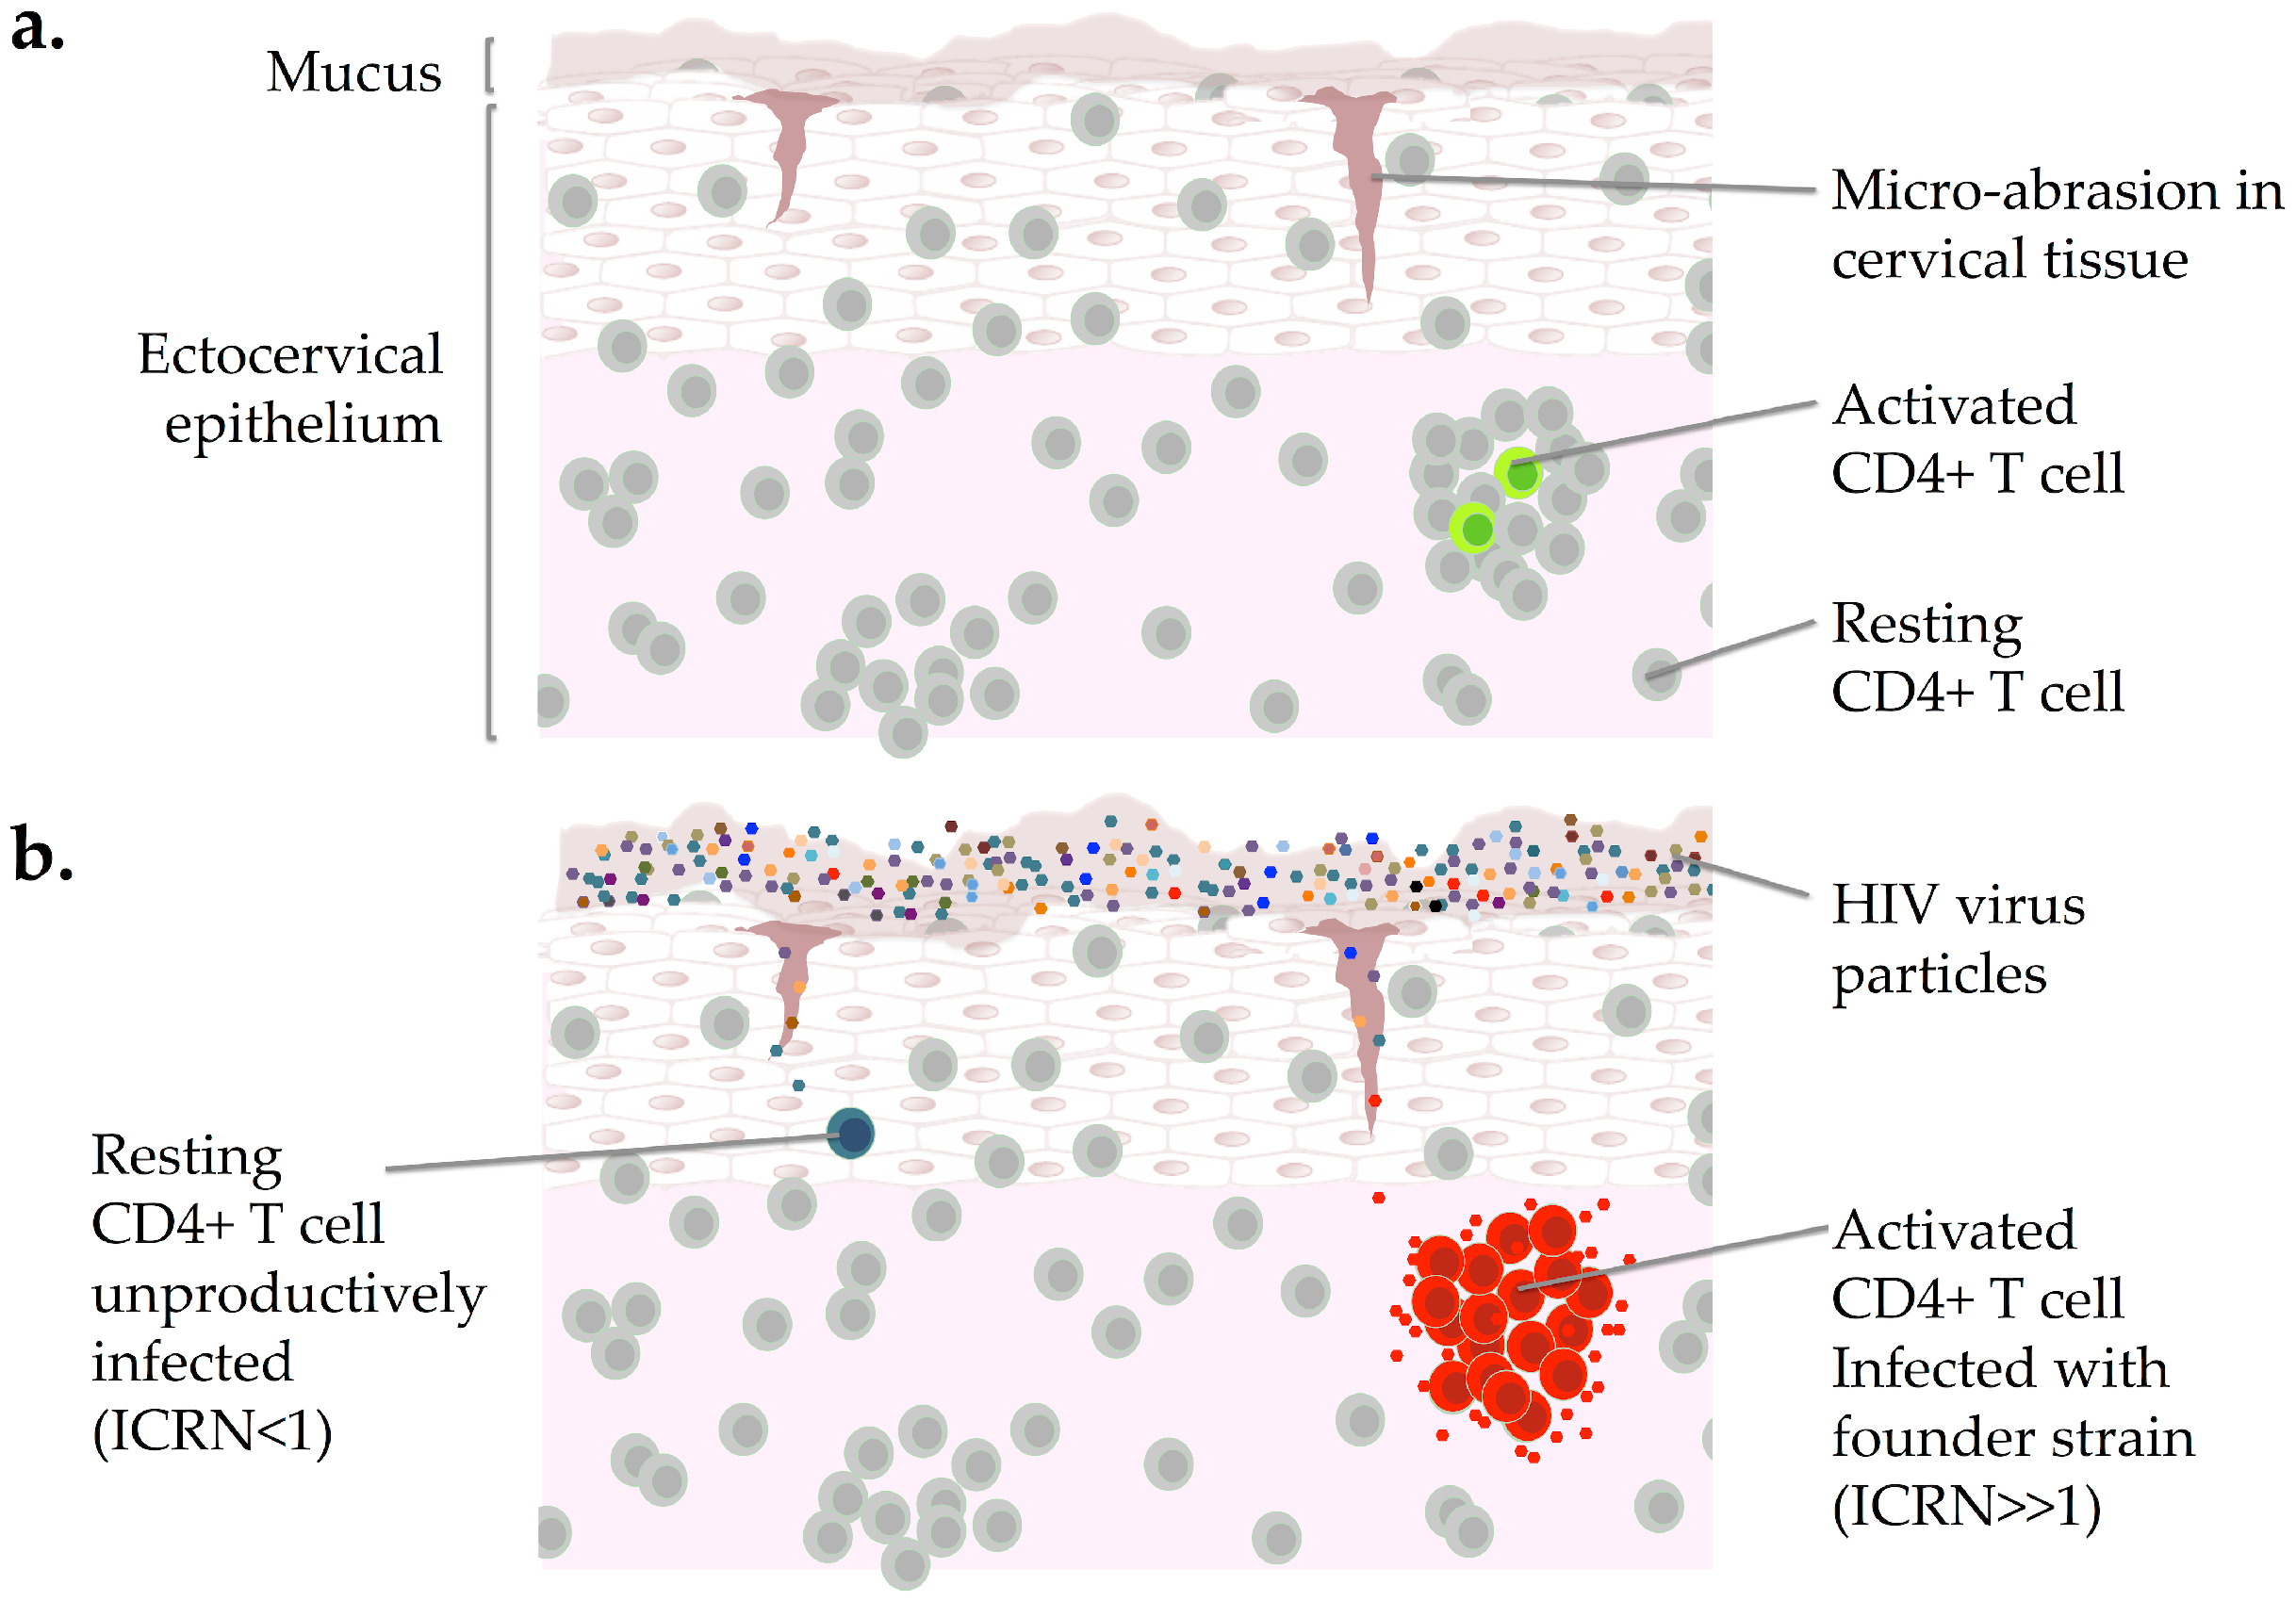 Heterogeneity among CD4+ T cells in the genital mucosa and the HIV founder strain.